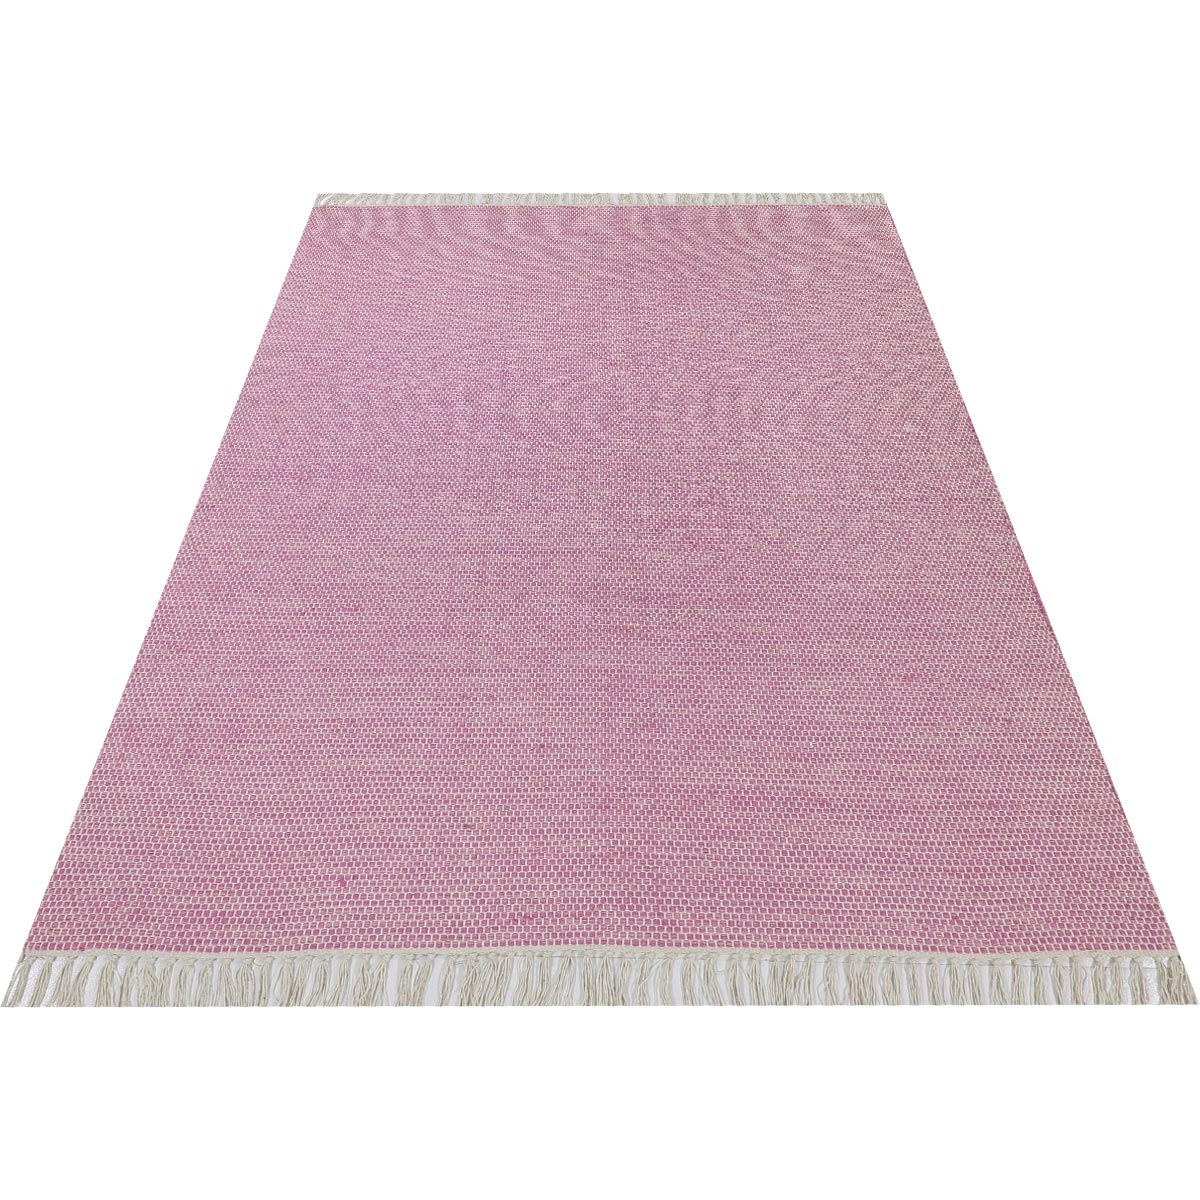 Chicago Rug 01 Dark Pink 2